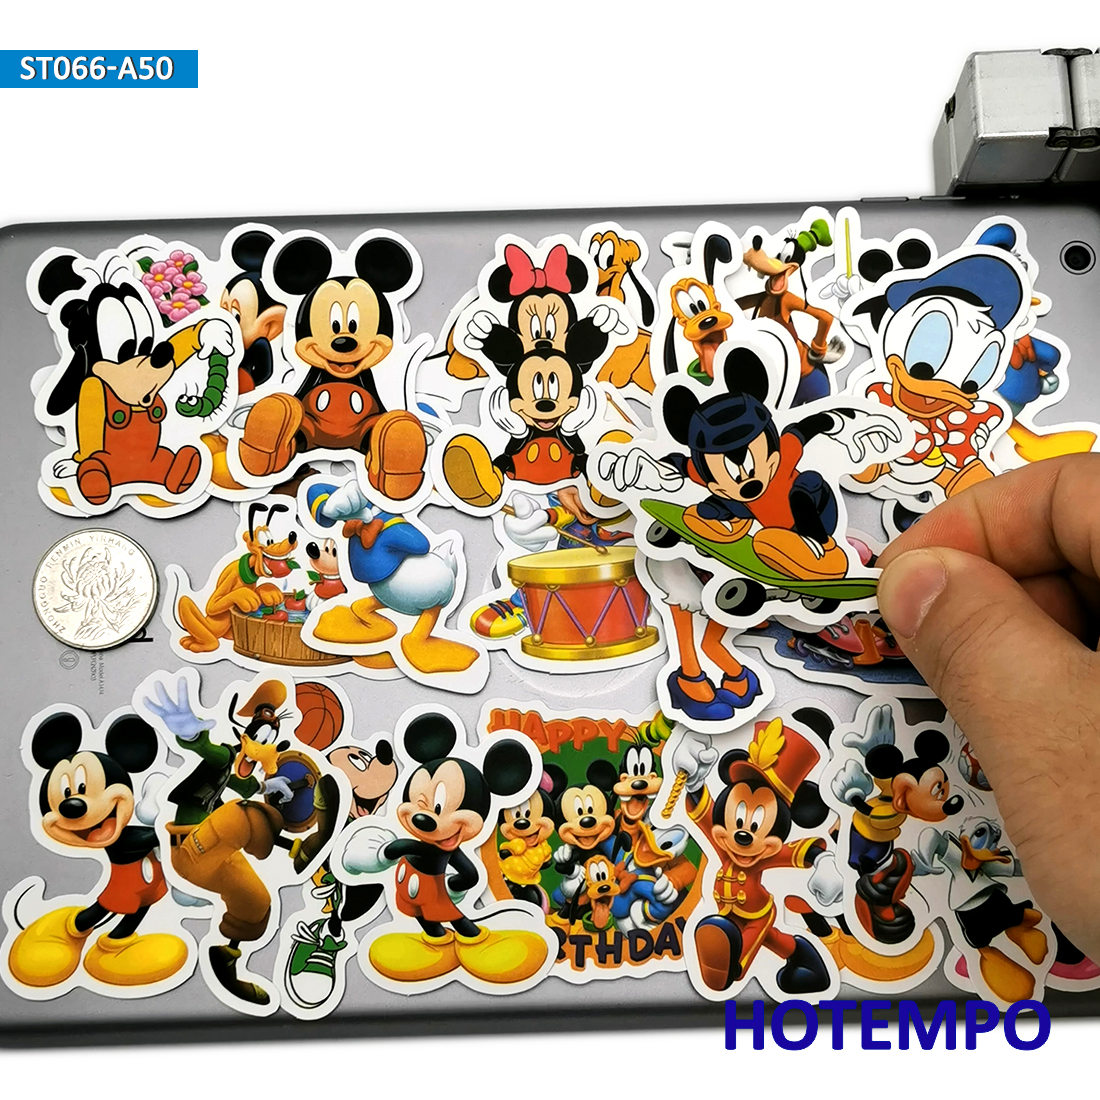 50pcs Minnie Mickey Cute Anime Stickers Toys For Children Kids Scrapbook Stationery Mobile Phone Laptop Suitcase Decal Stickers